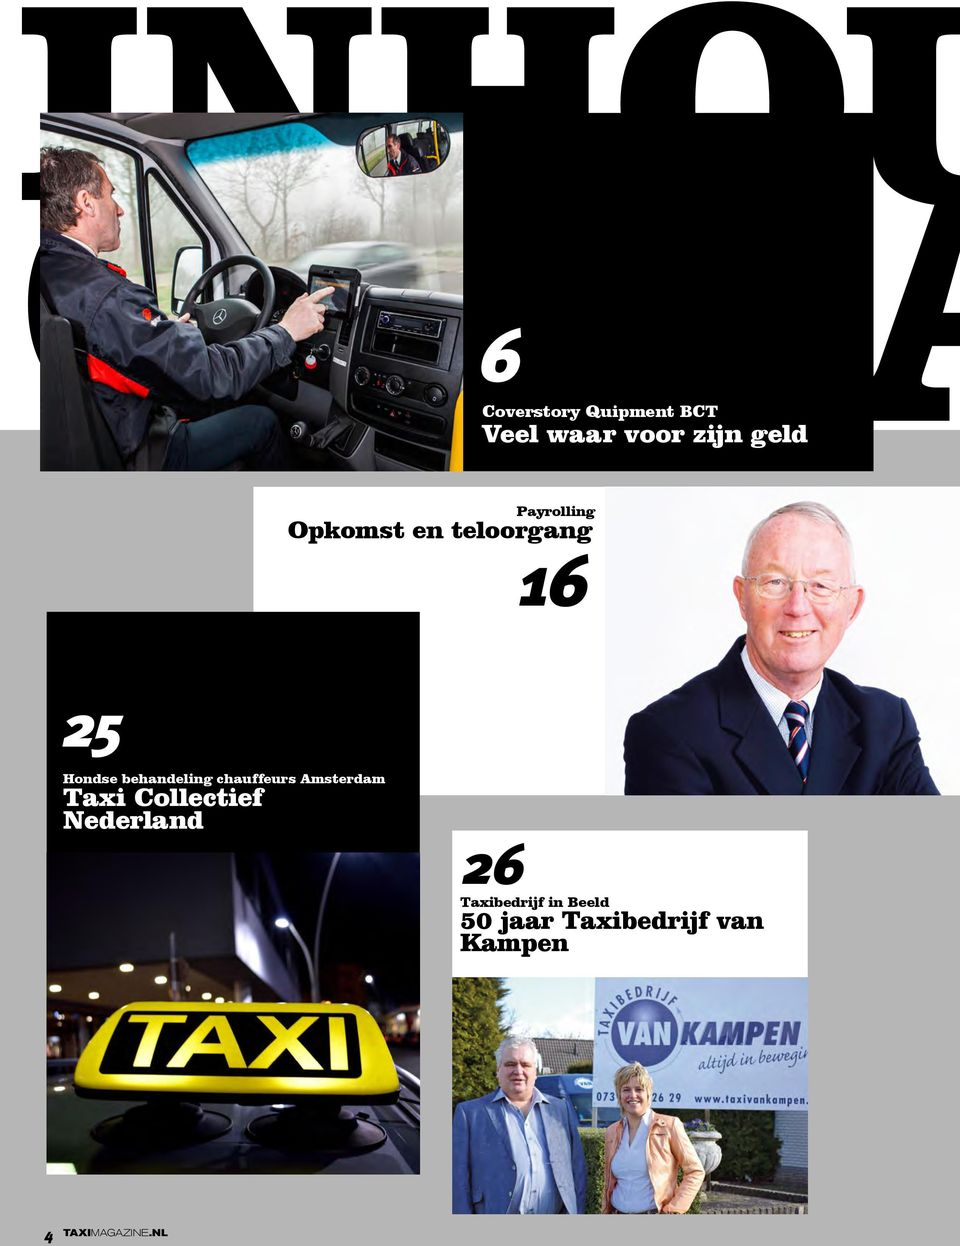 behandeling chauffeurs Amsterdam Taxi Collectief Nederland